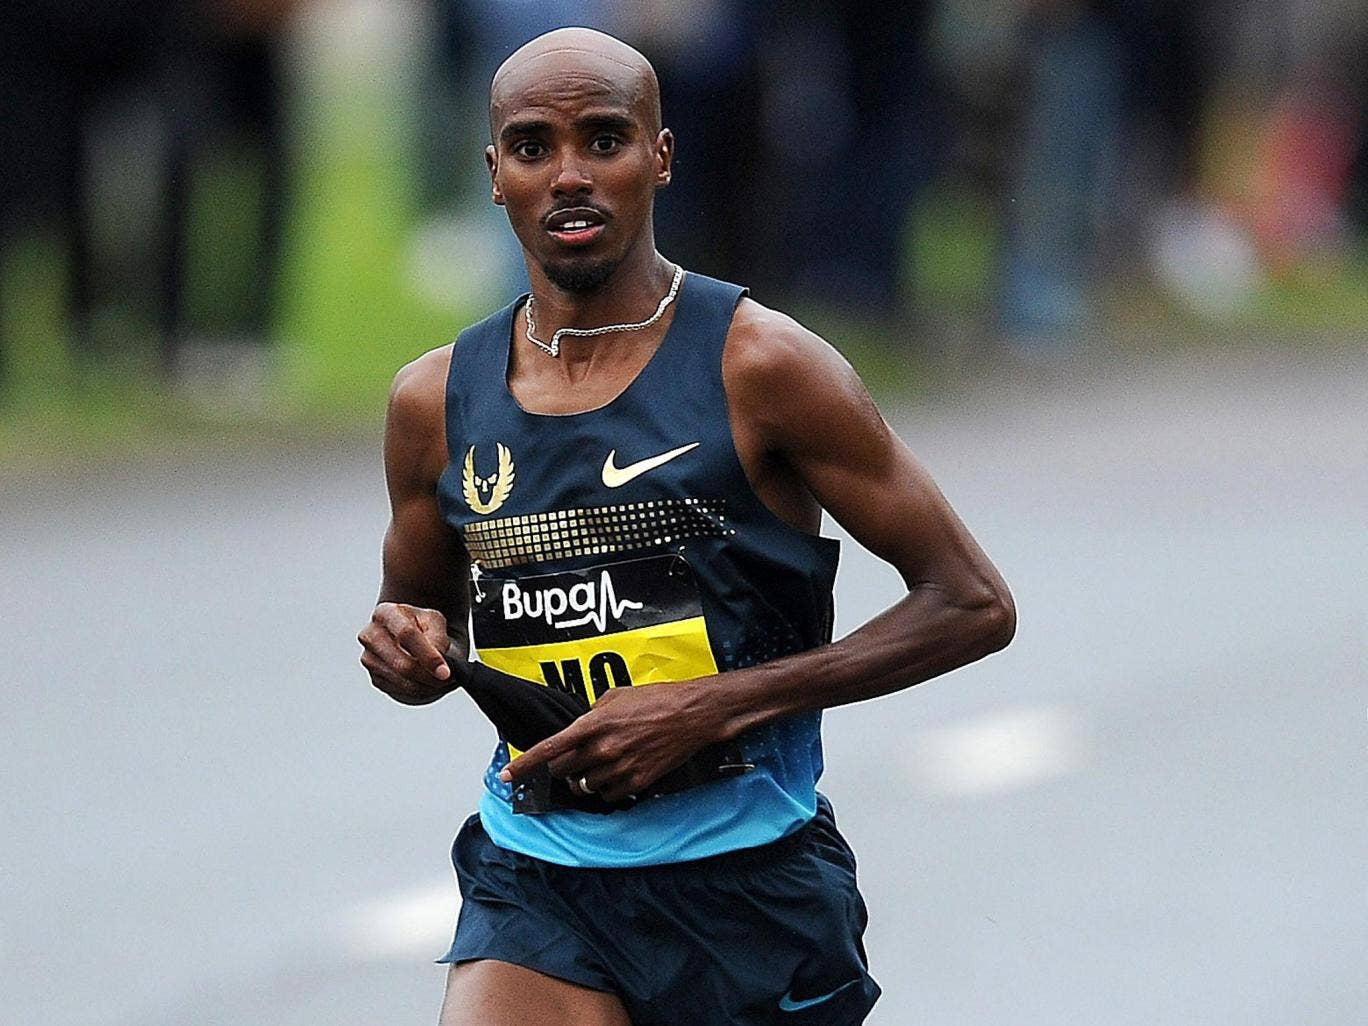 Mo Farah will be returning to action this week in the New York City Half Marathon